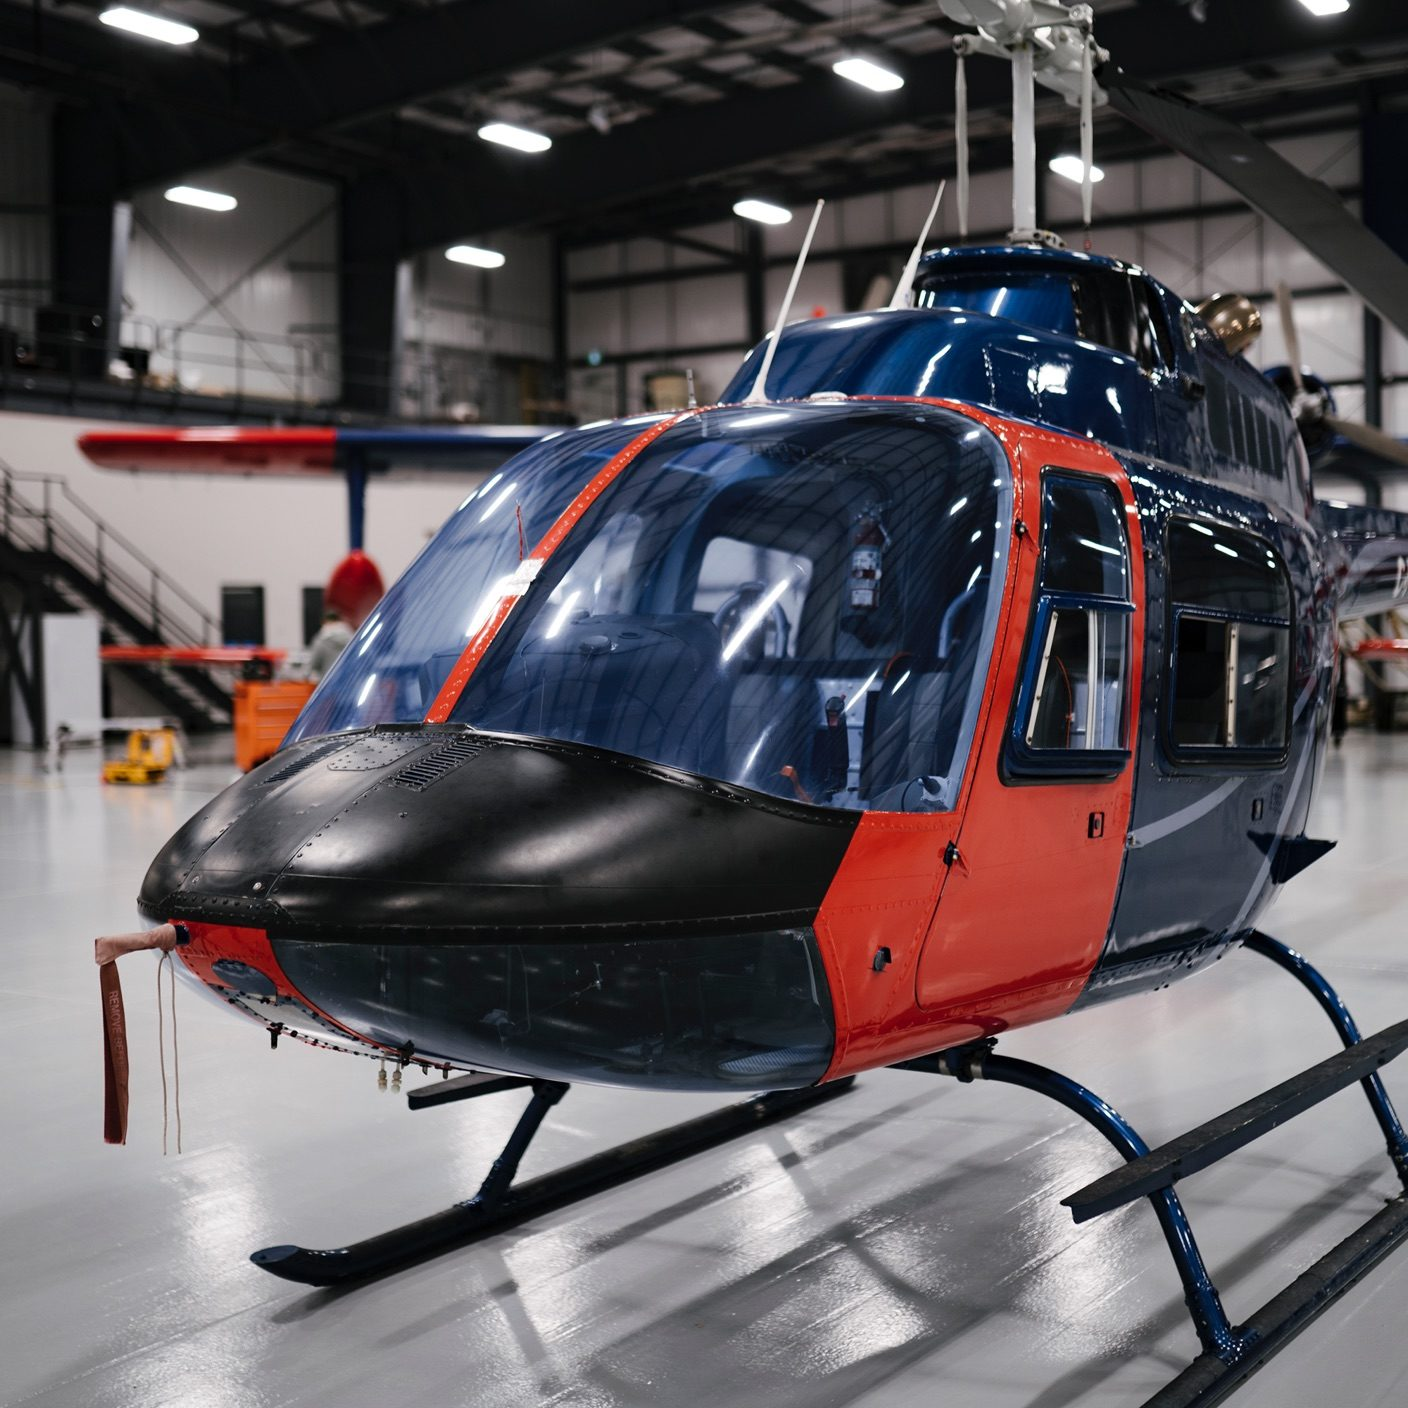 blue and red helicopter in a warehouse